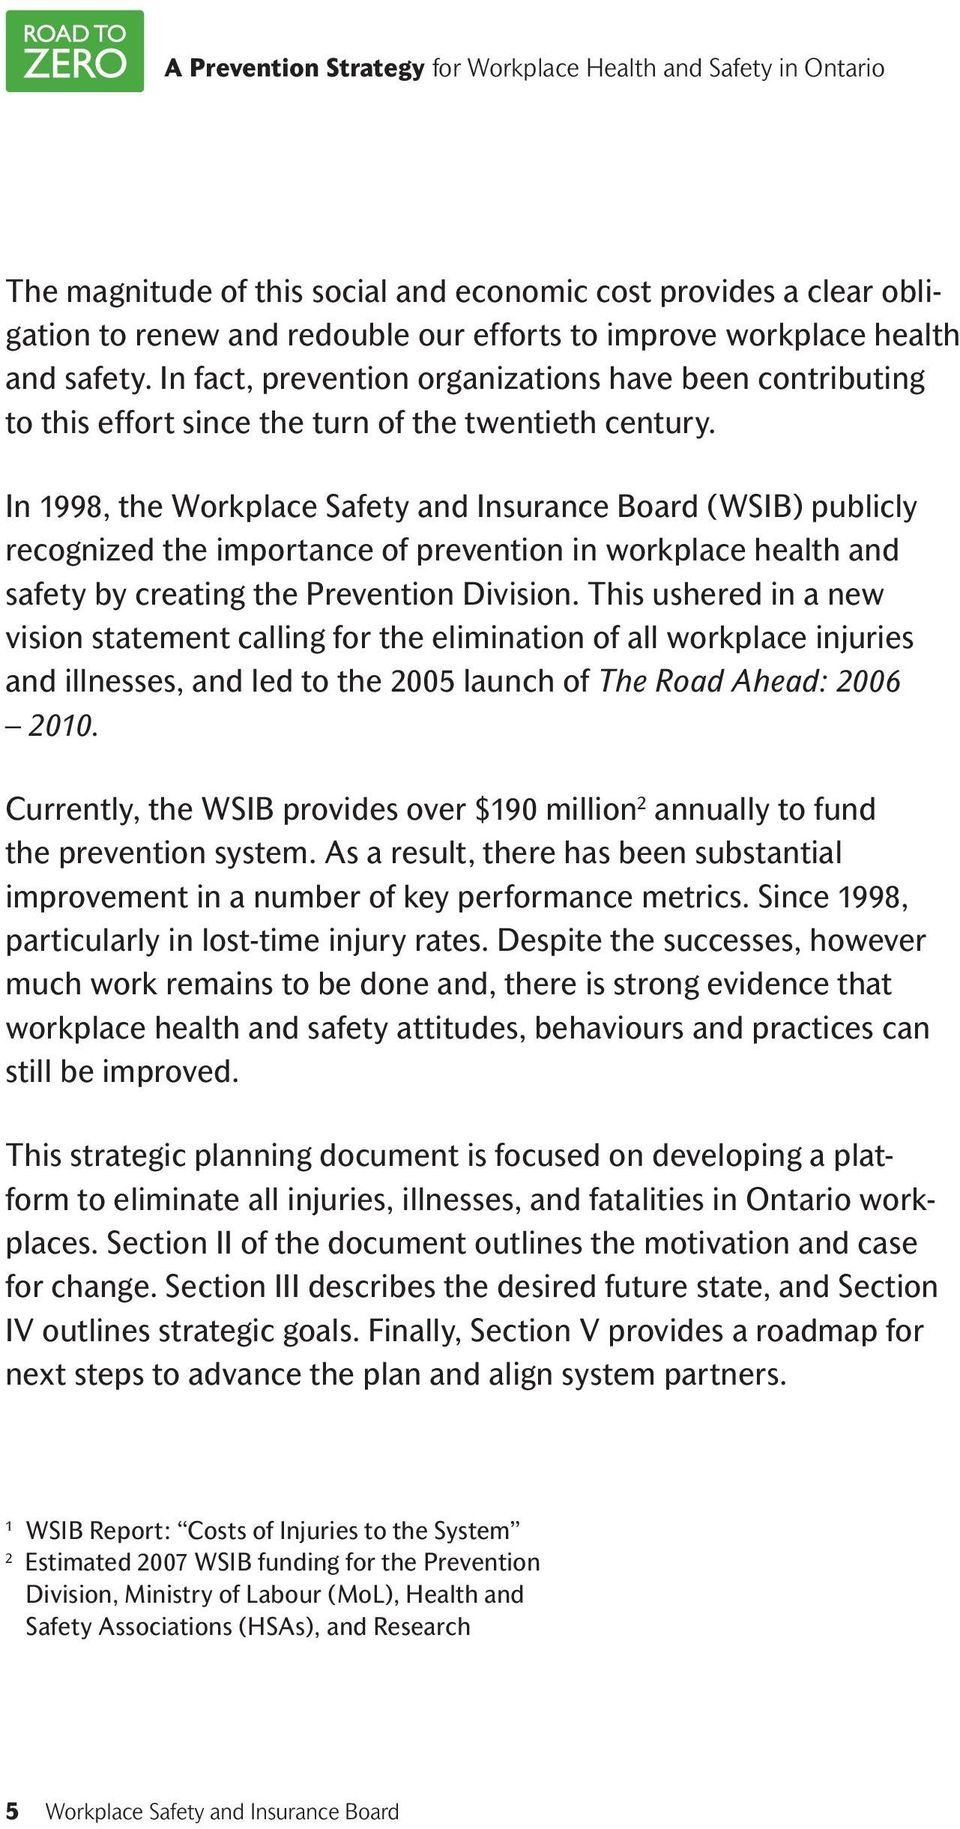 In 1998, the Workplace Safety and Insurance Board (WSIB) publicly recognized the importance of prevention in workplace health and safety by creating the Prevention Division.